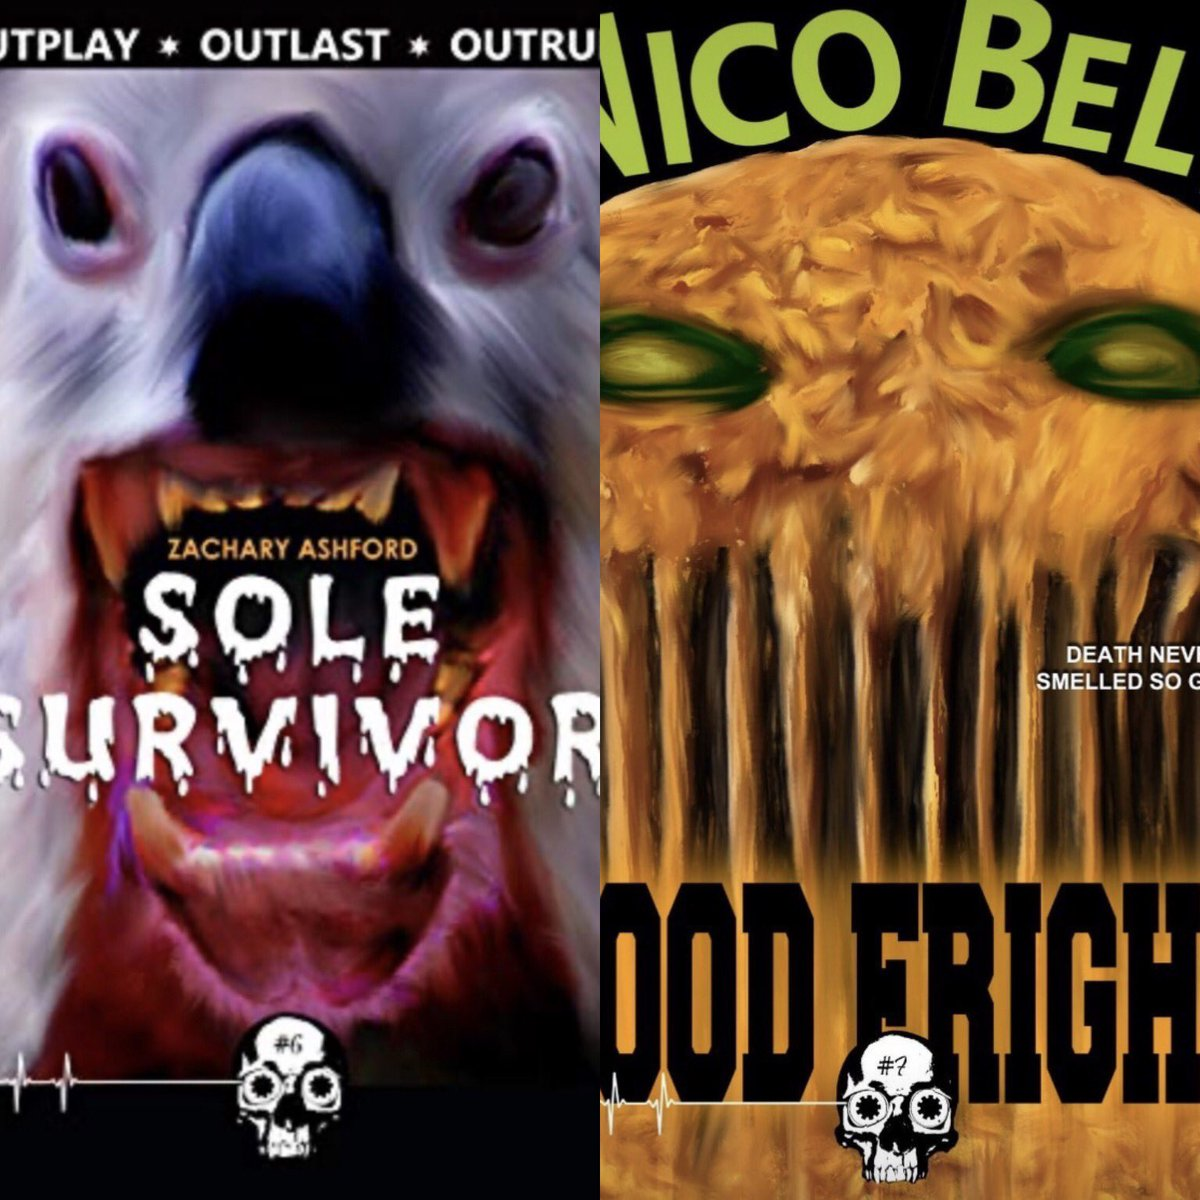 @GwendolynKiste The next two installments in the fantastic @UnnervingMag #RewindOrDie series came out this week: Food Fight by @nicobellfiction and Soul Survivor by @ashford_zachary